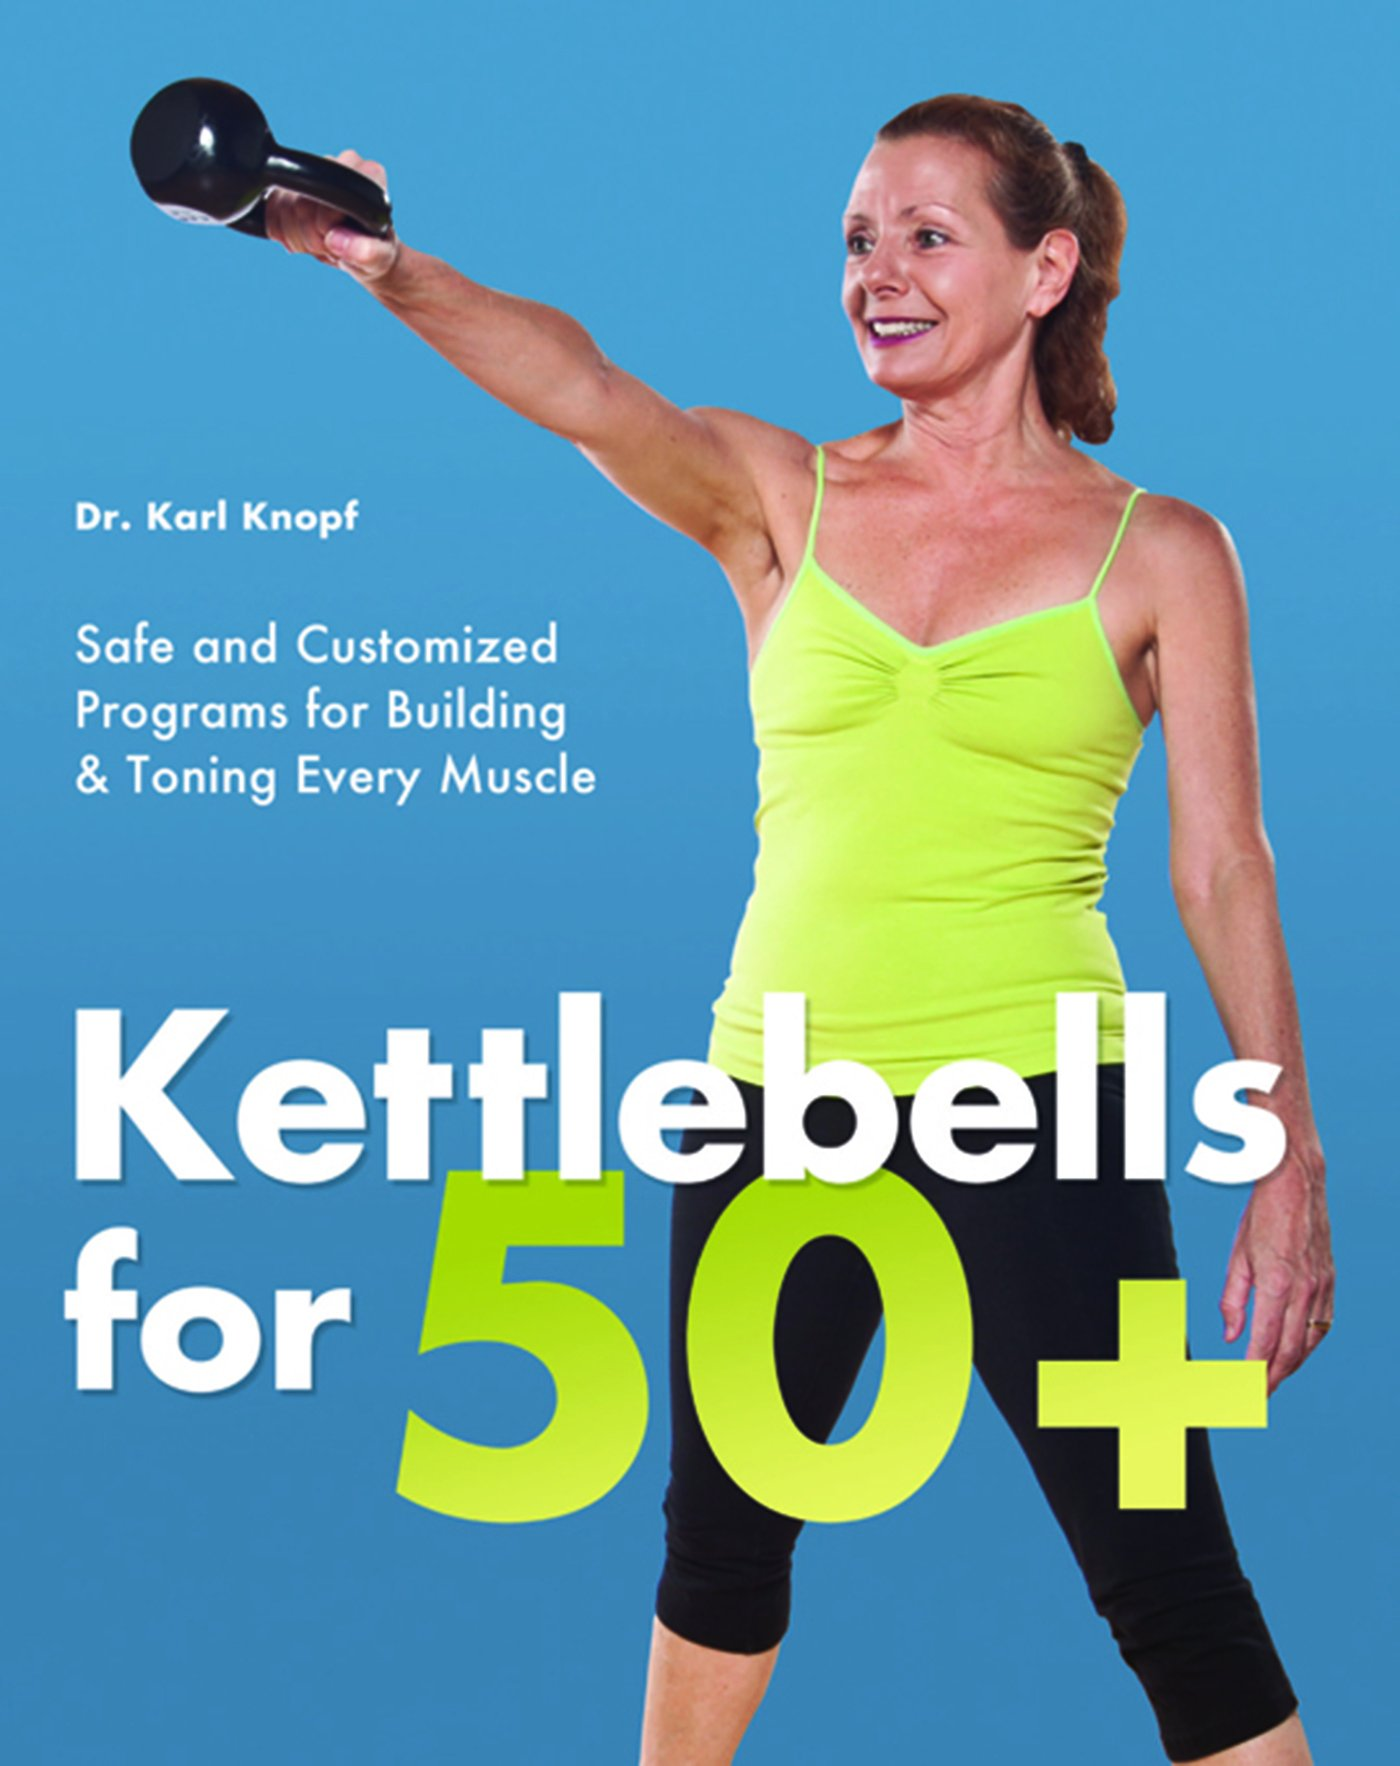 Kettlebells 50 Customized Programs Building product image